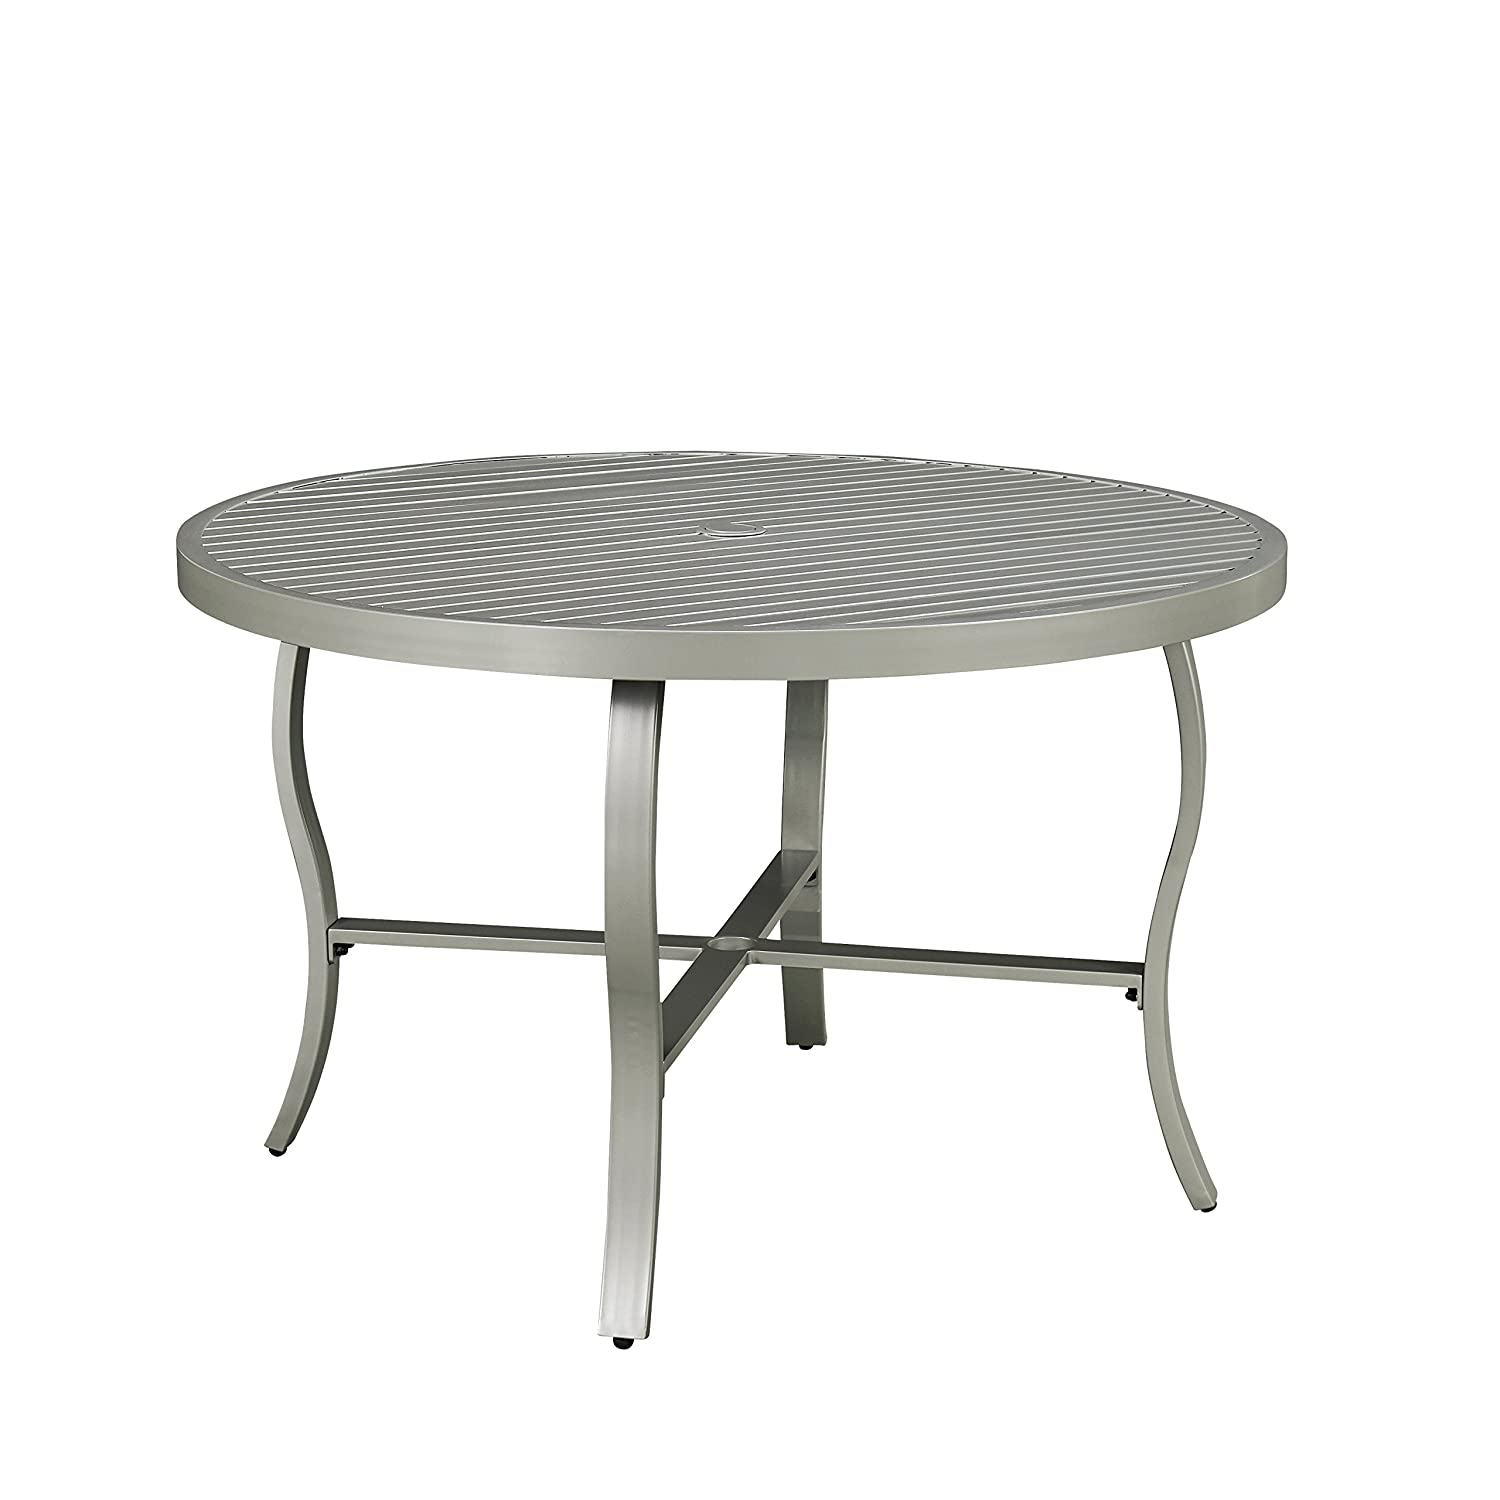 Home Styles 5700-32 South Beach Round Outdoor Patio Dining Table, 48 , Gray